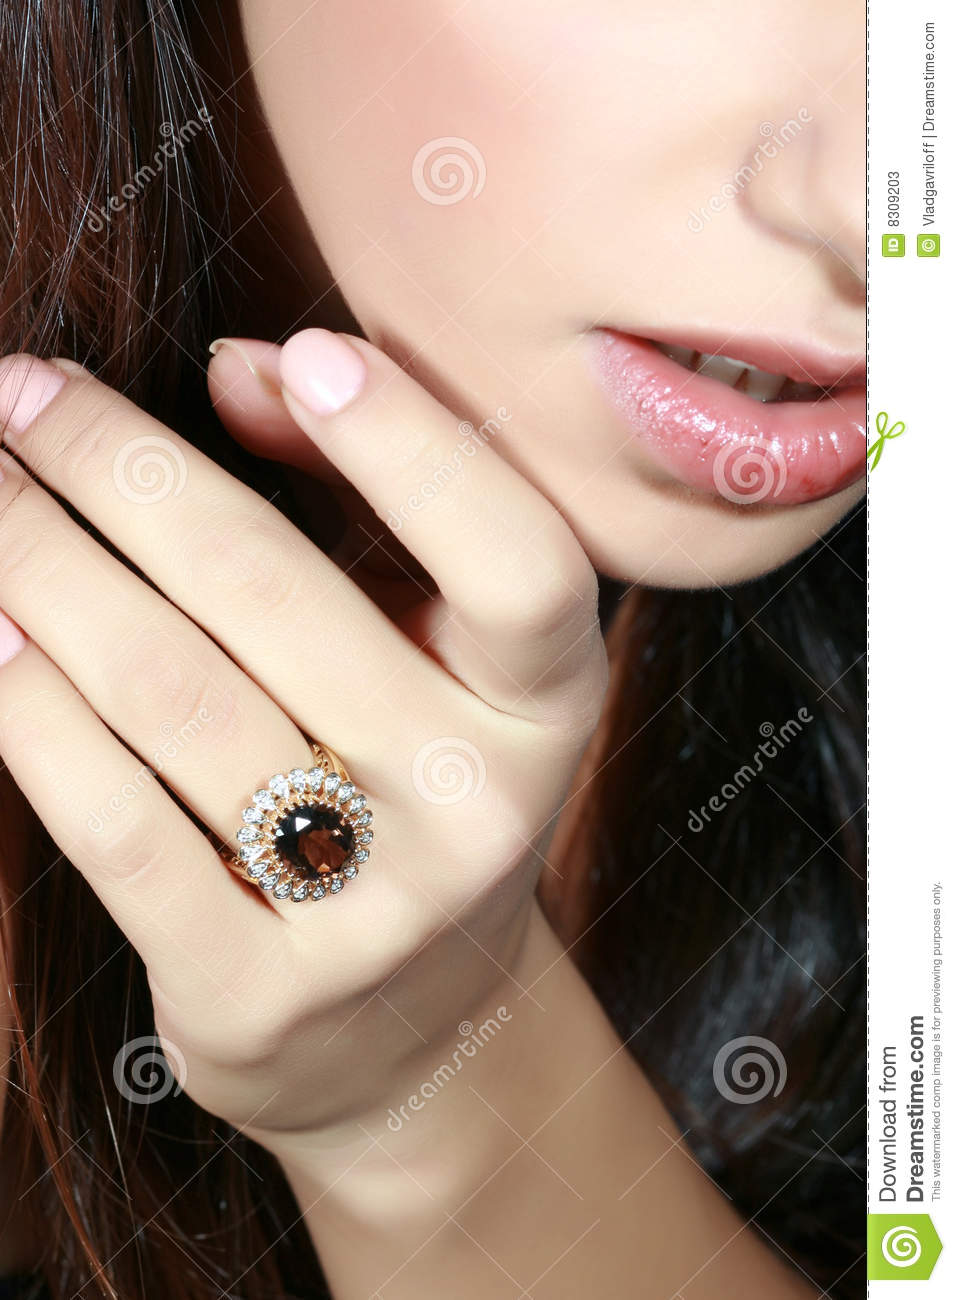 Ring with a jewel